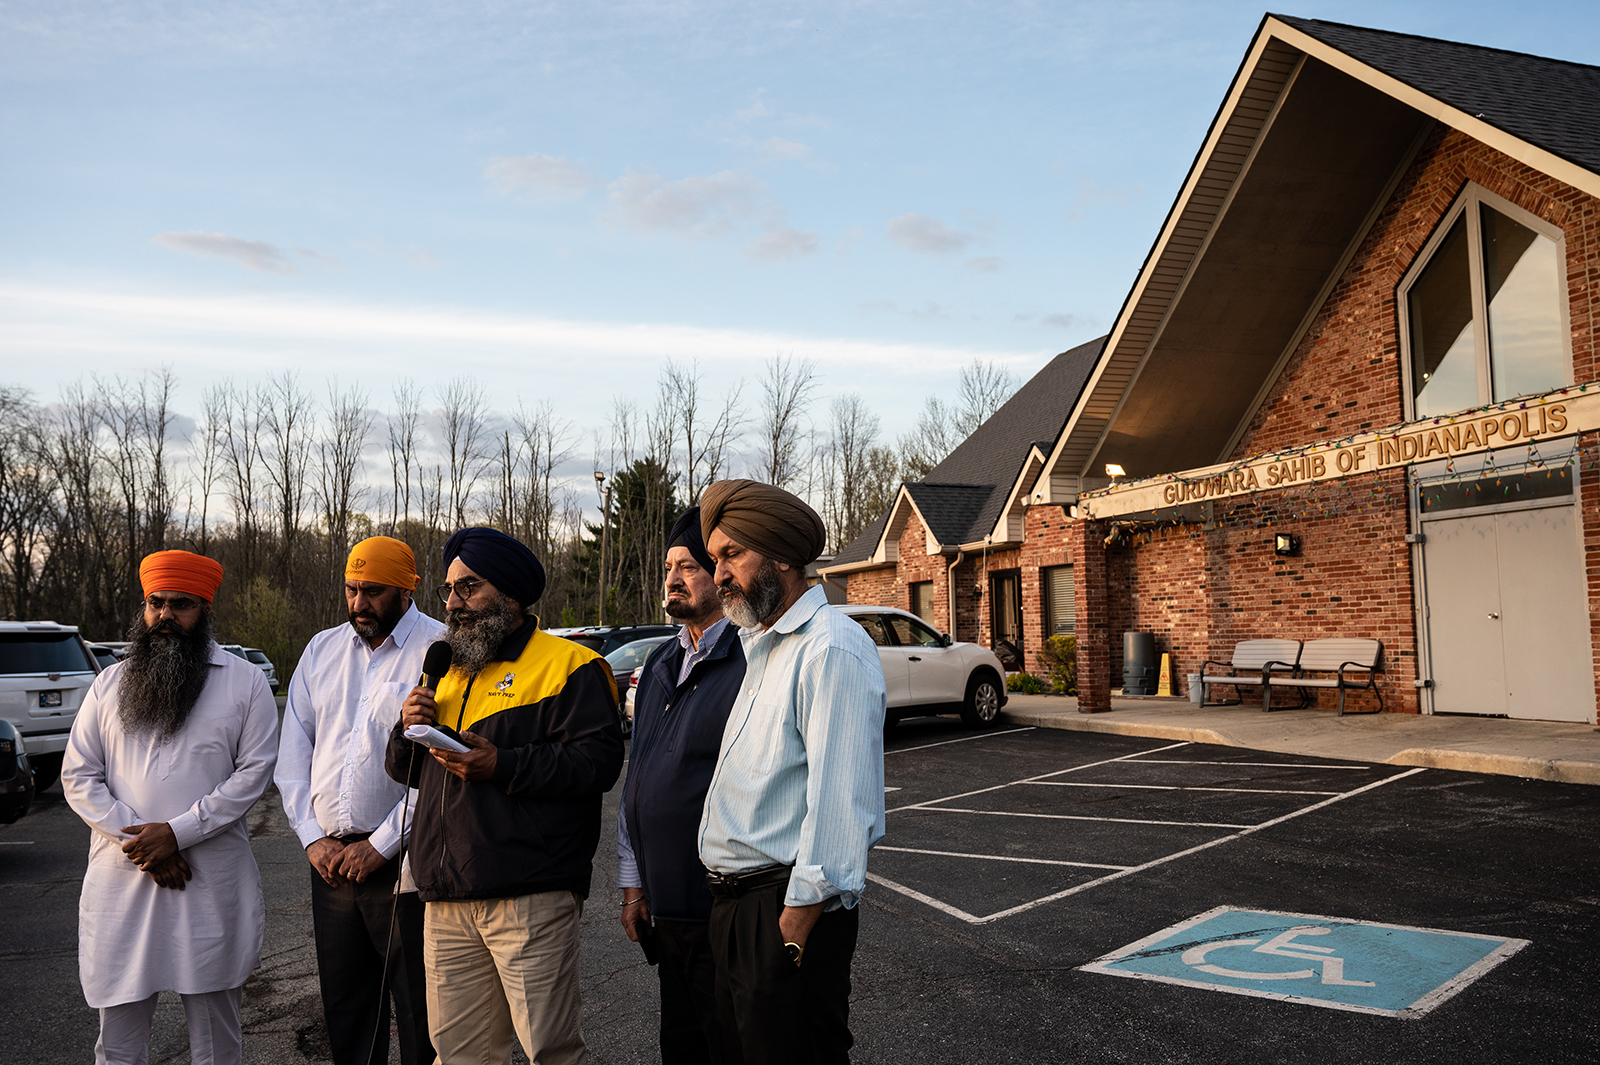 The Sikh community is in mourning as 4 members were among the victims of the Indianapolis shooting